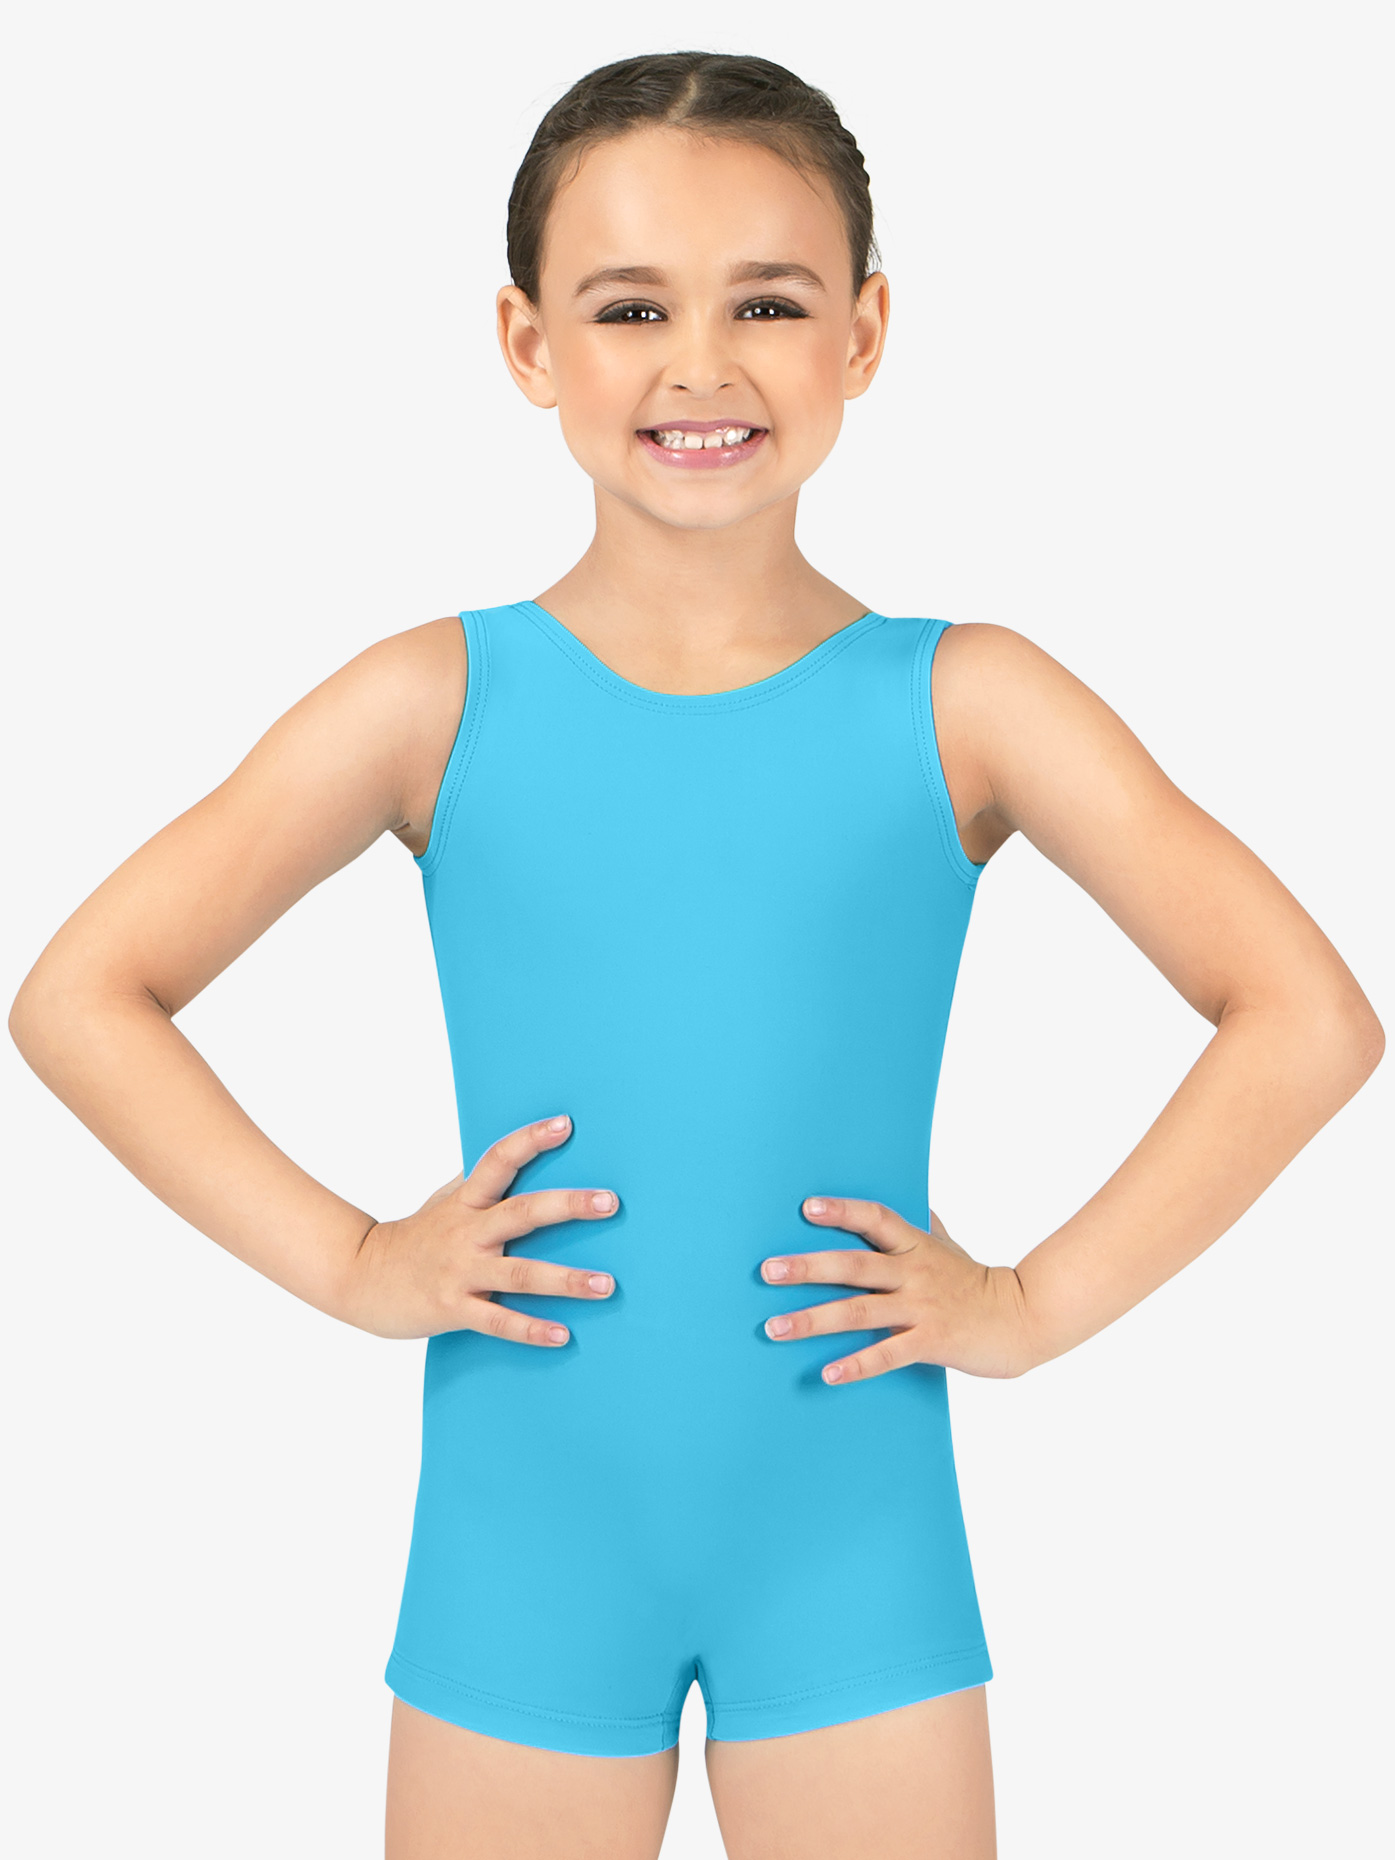 Perfect Balance Child Basic Tank Shorty Unitard G594C